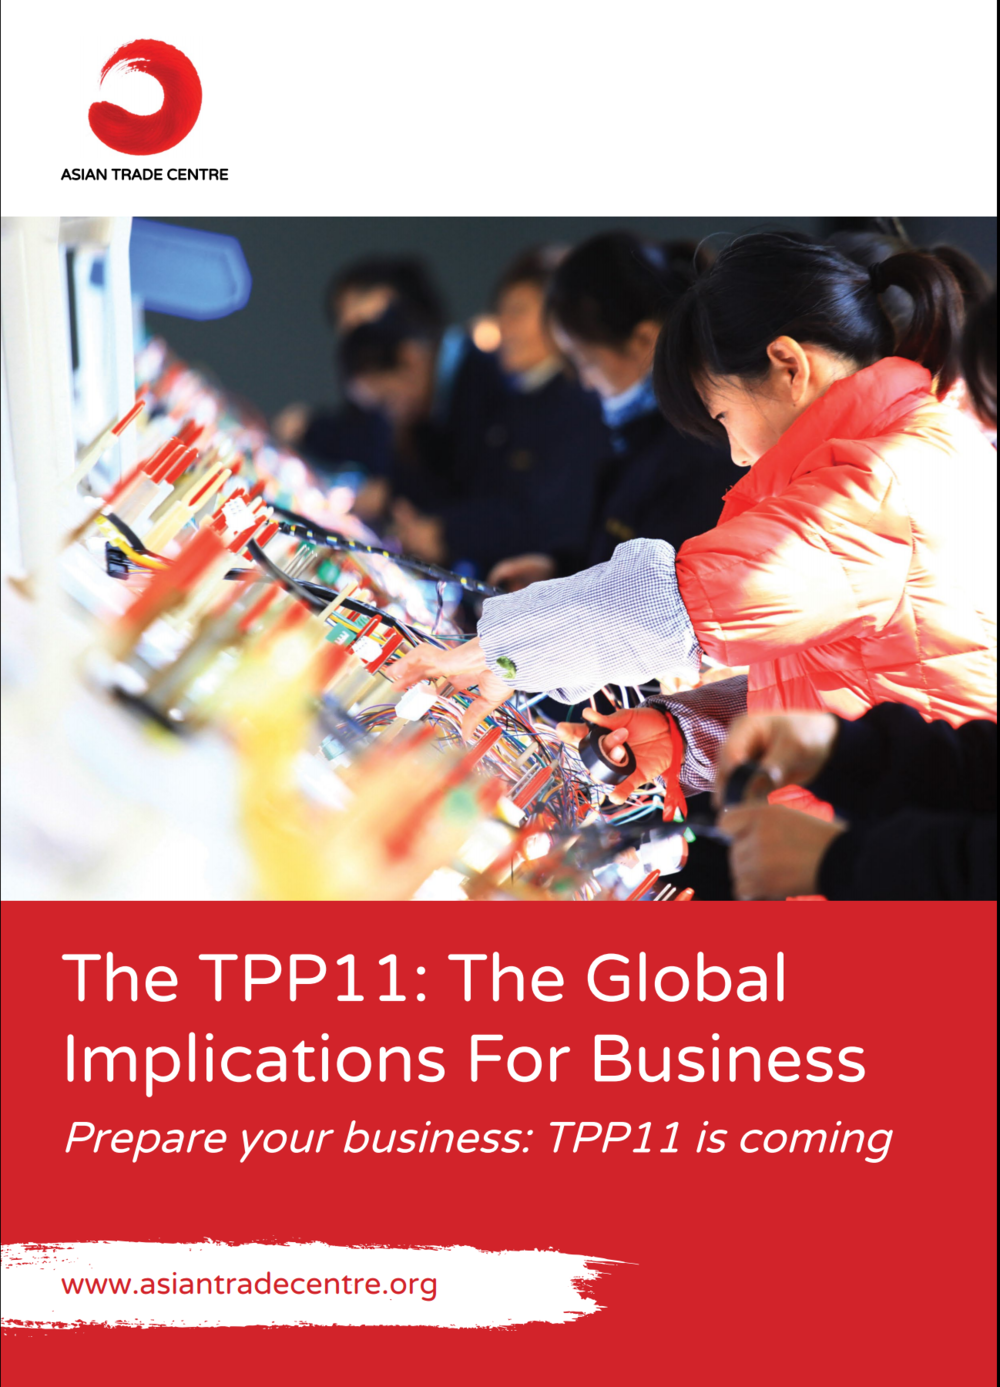 TPP11 benefits - Cover photo.PNG